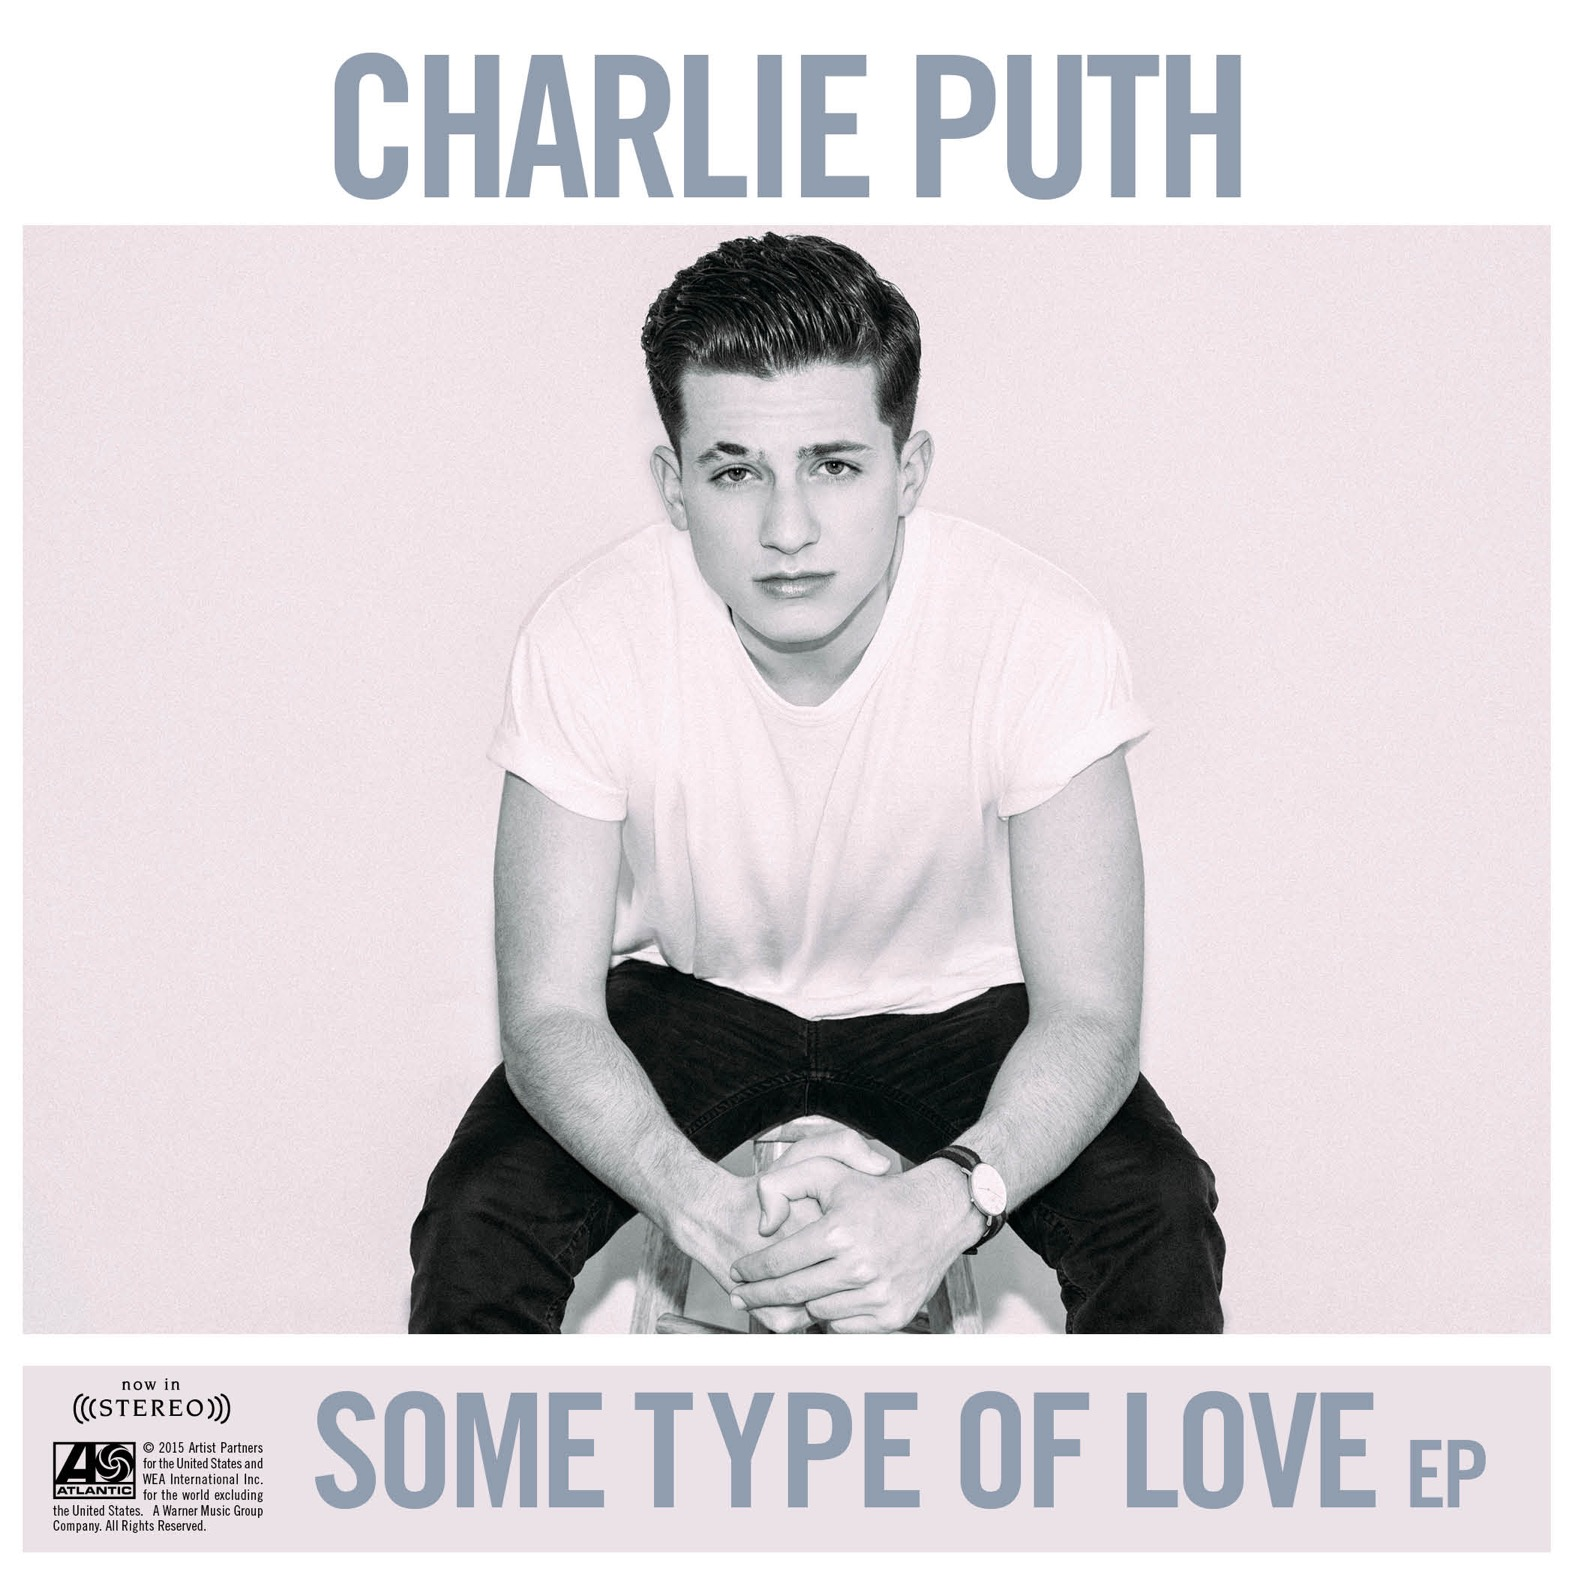 Charlie Puth Introduces Himself to the World on 'Some Kind Of Love' EP